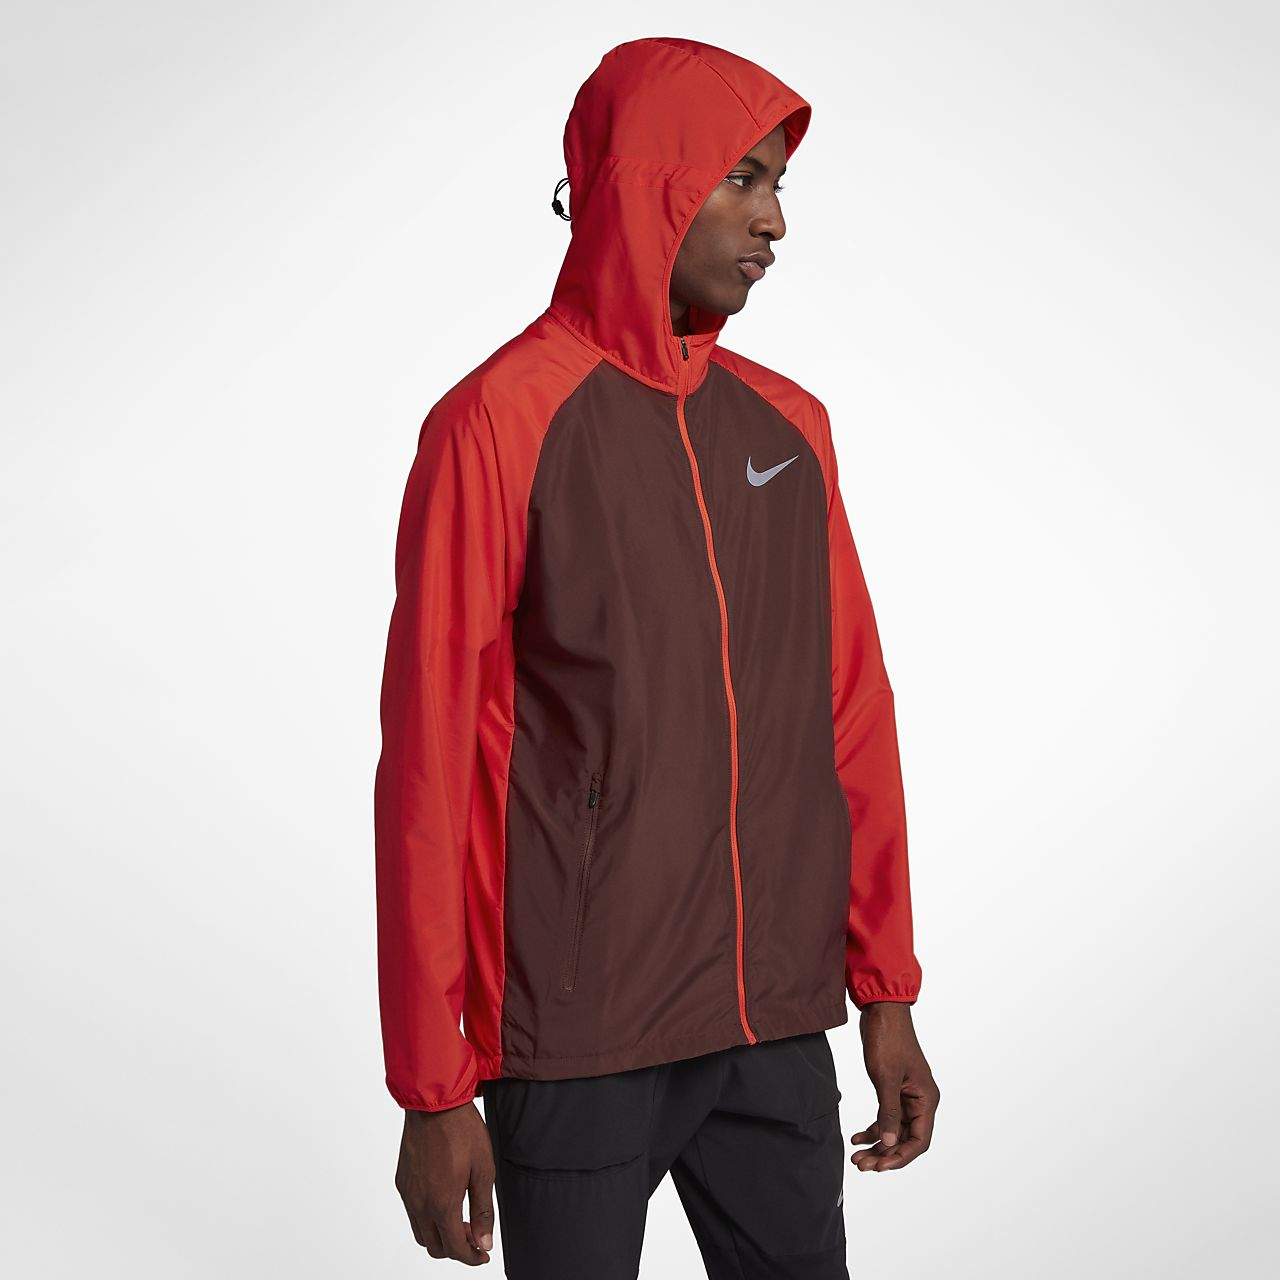 san francisco 0c073 1cde7 Nike Essential Men s Running Jacket. Nike.com SI